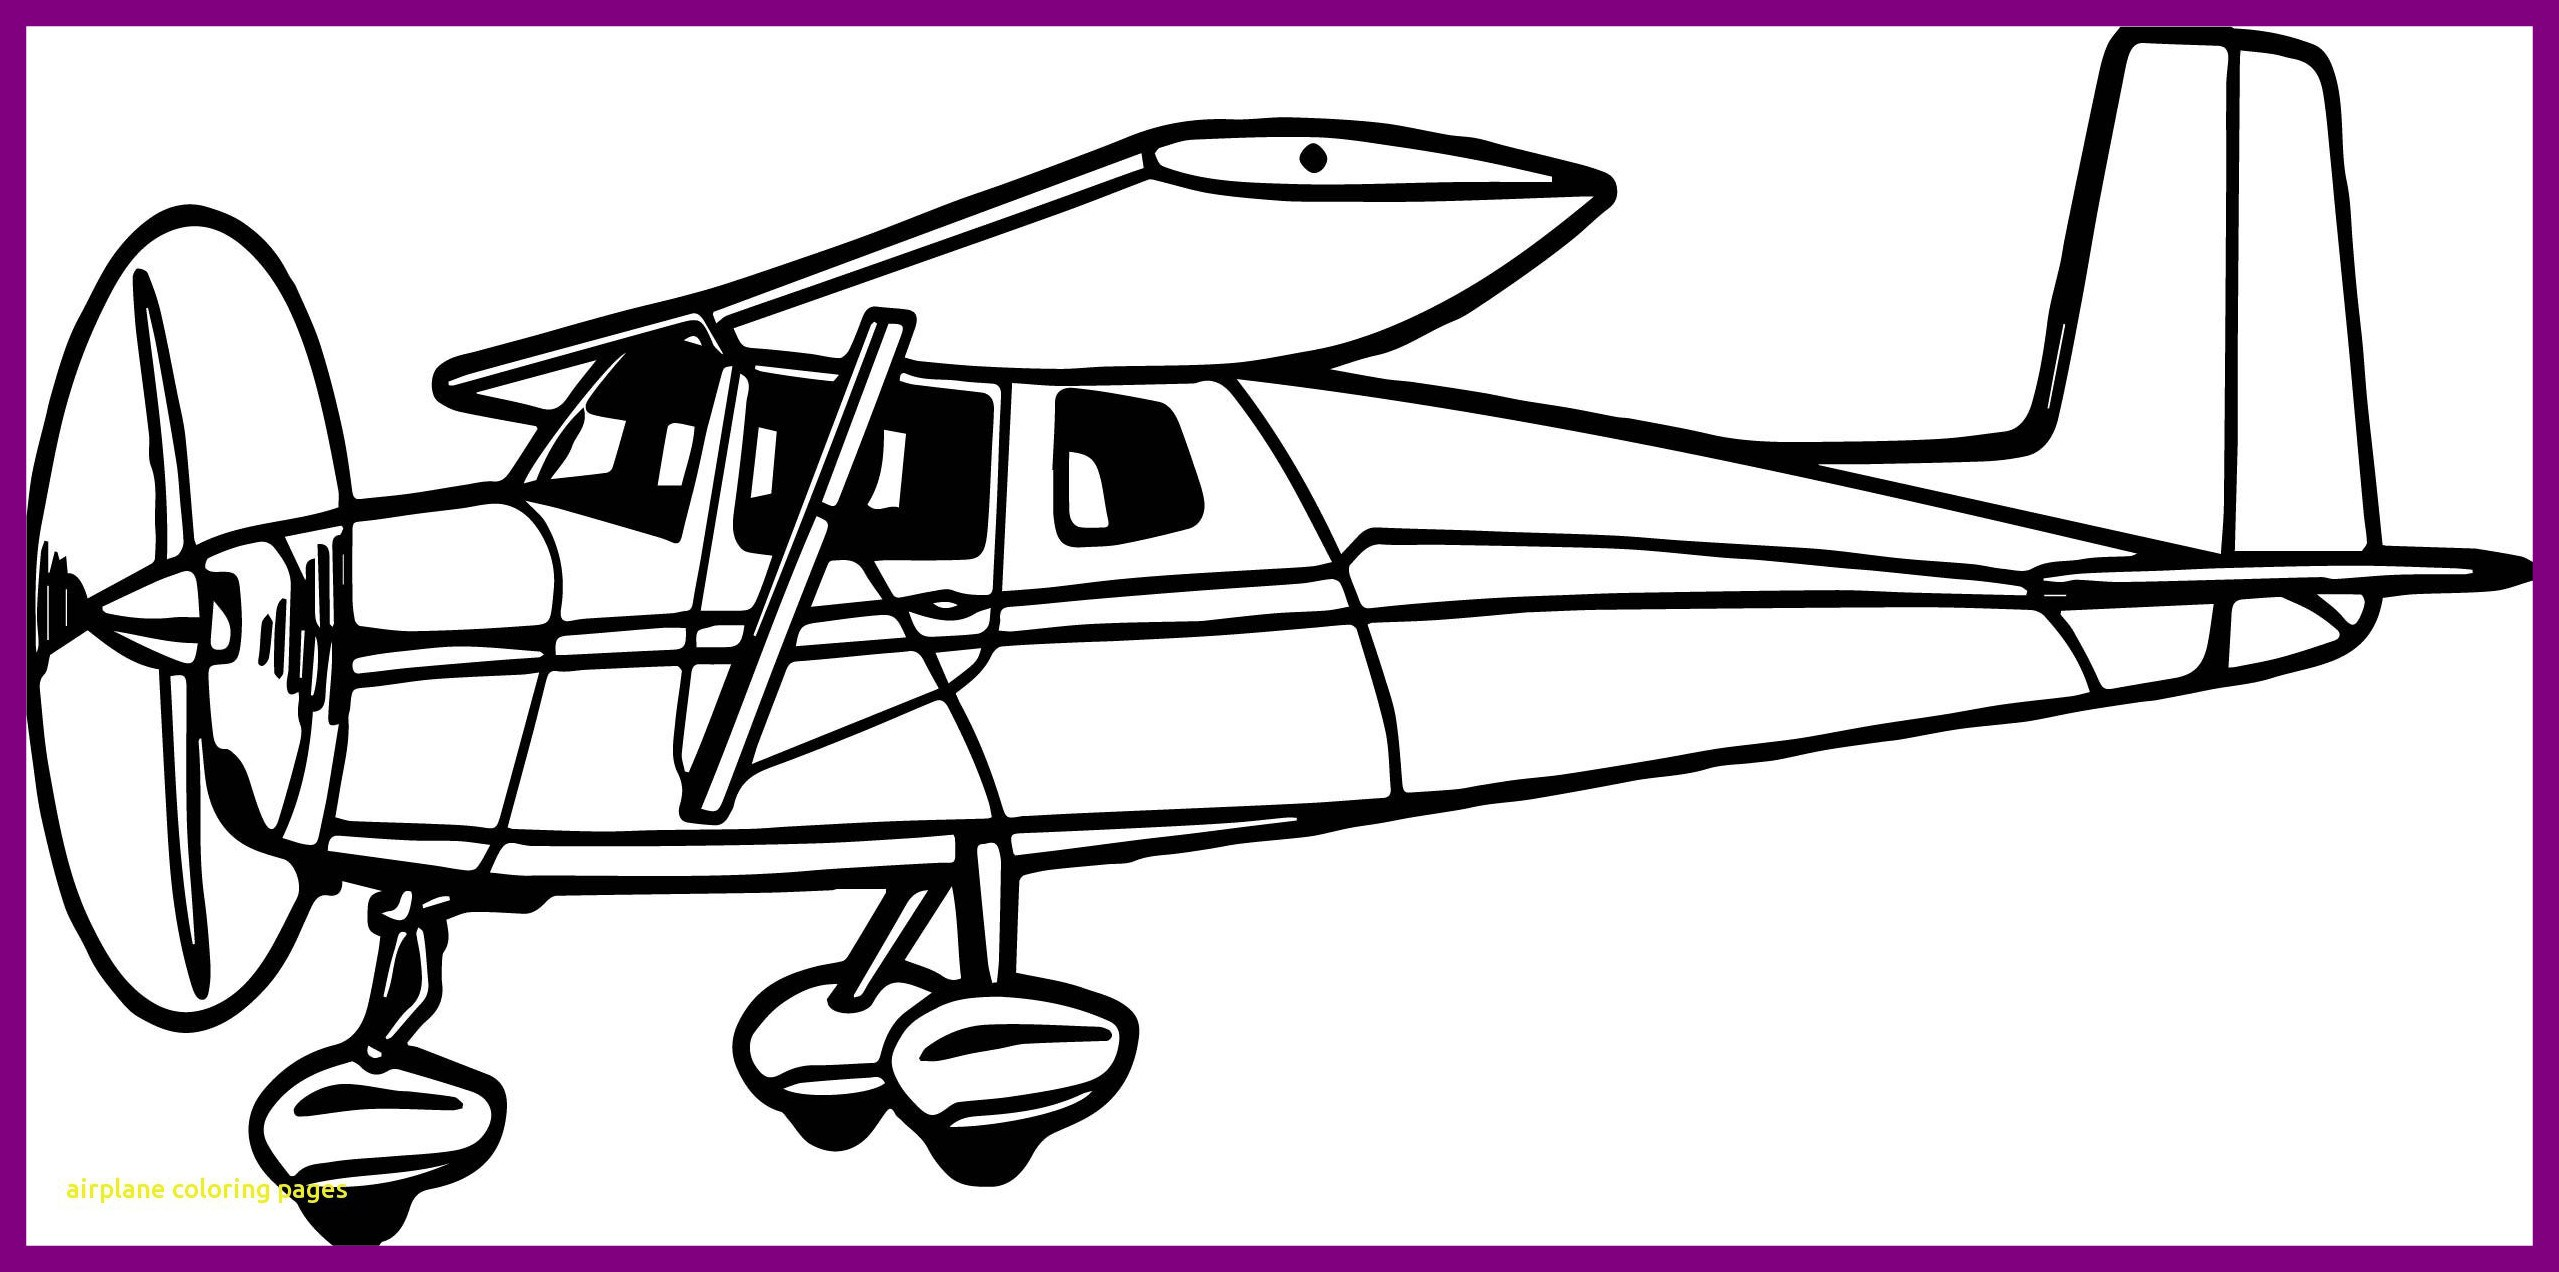 Aeroplane Colouring Pages at GetDrawings.com.